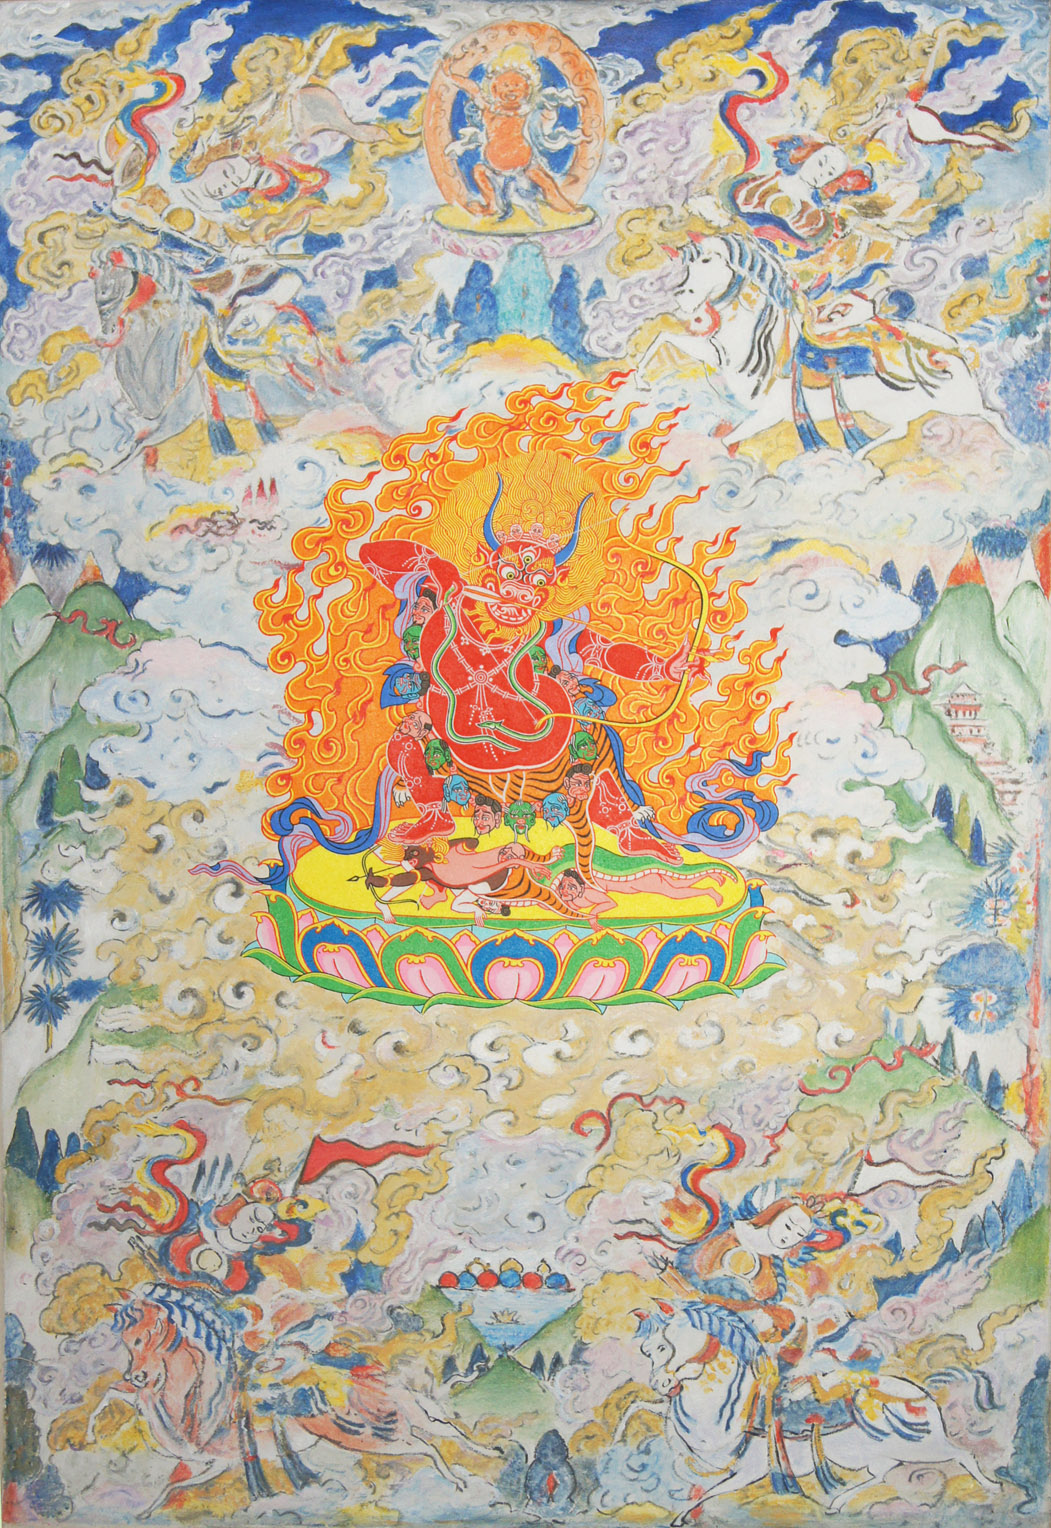 Vajrabhairava. 2016 with Daniel Bogunovic acrylic on canvas 61 x 91 cm $4,000